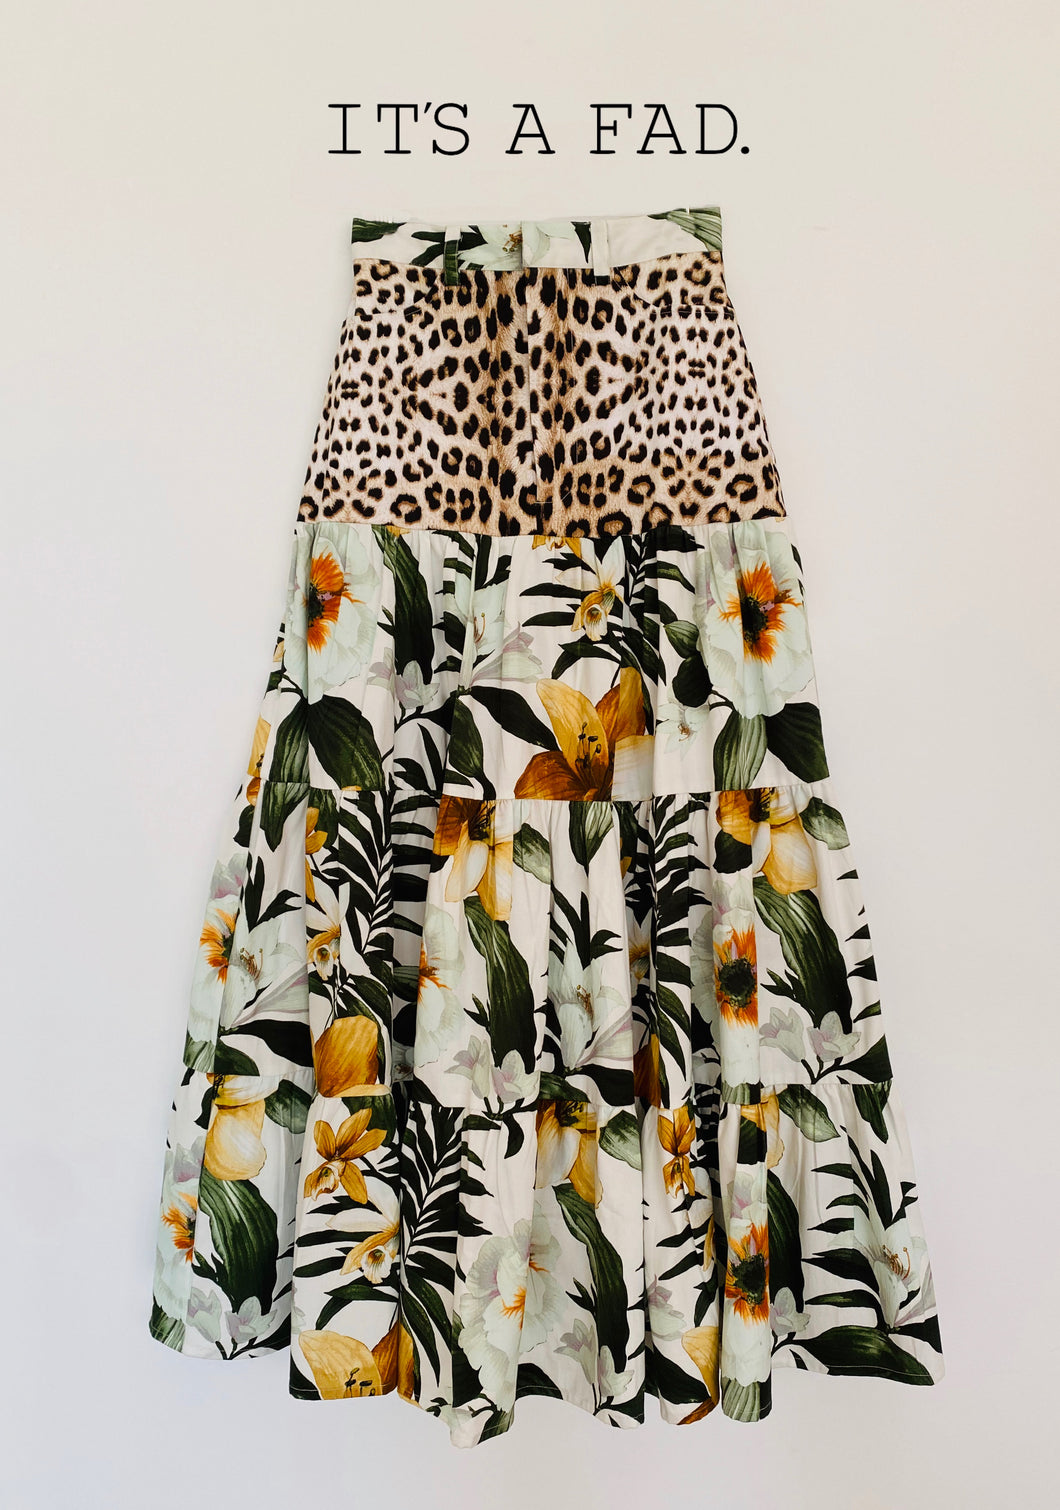 Savvanah Long GATHERED TIERED SKIRT - Roberto Cavalli Leopard & floral